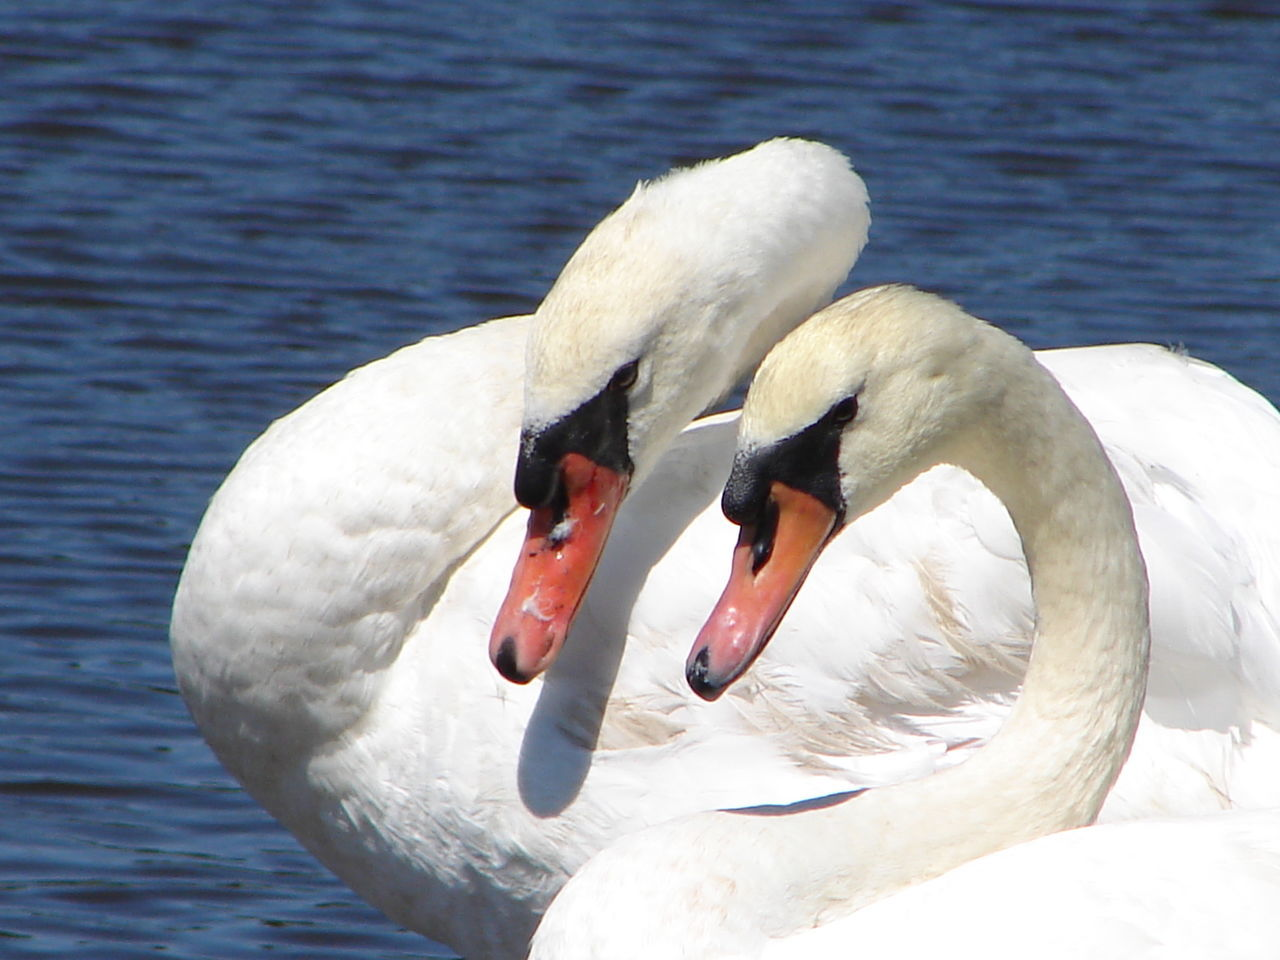 Animal Themes Animal Wildlife Animals In The Wild Beak Bird Blue Water Close-up Day Lake Nature No People Outdoors Rippled Water Swan Swans Togetherness Water